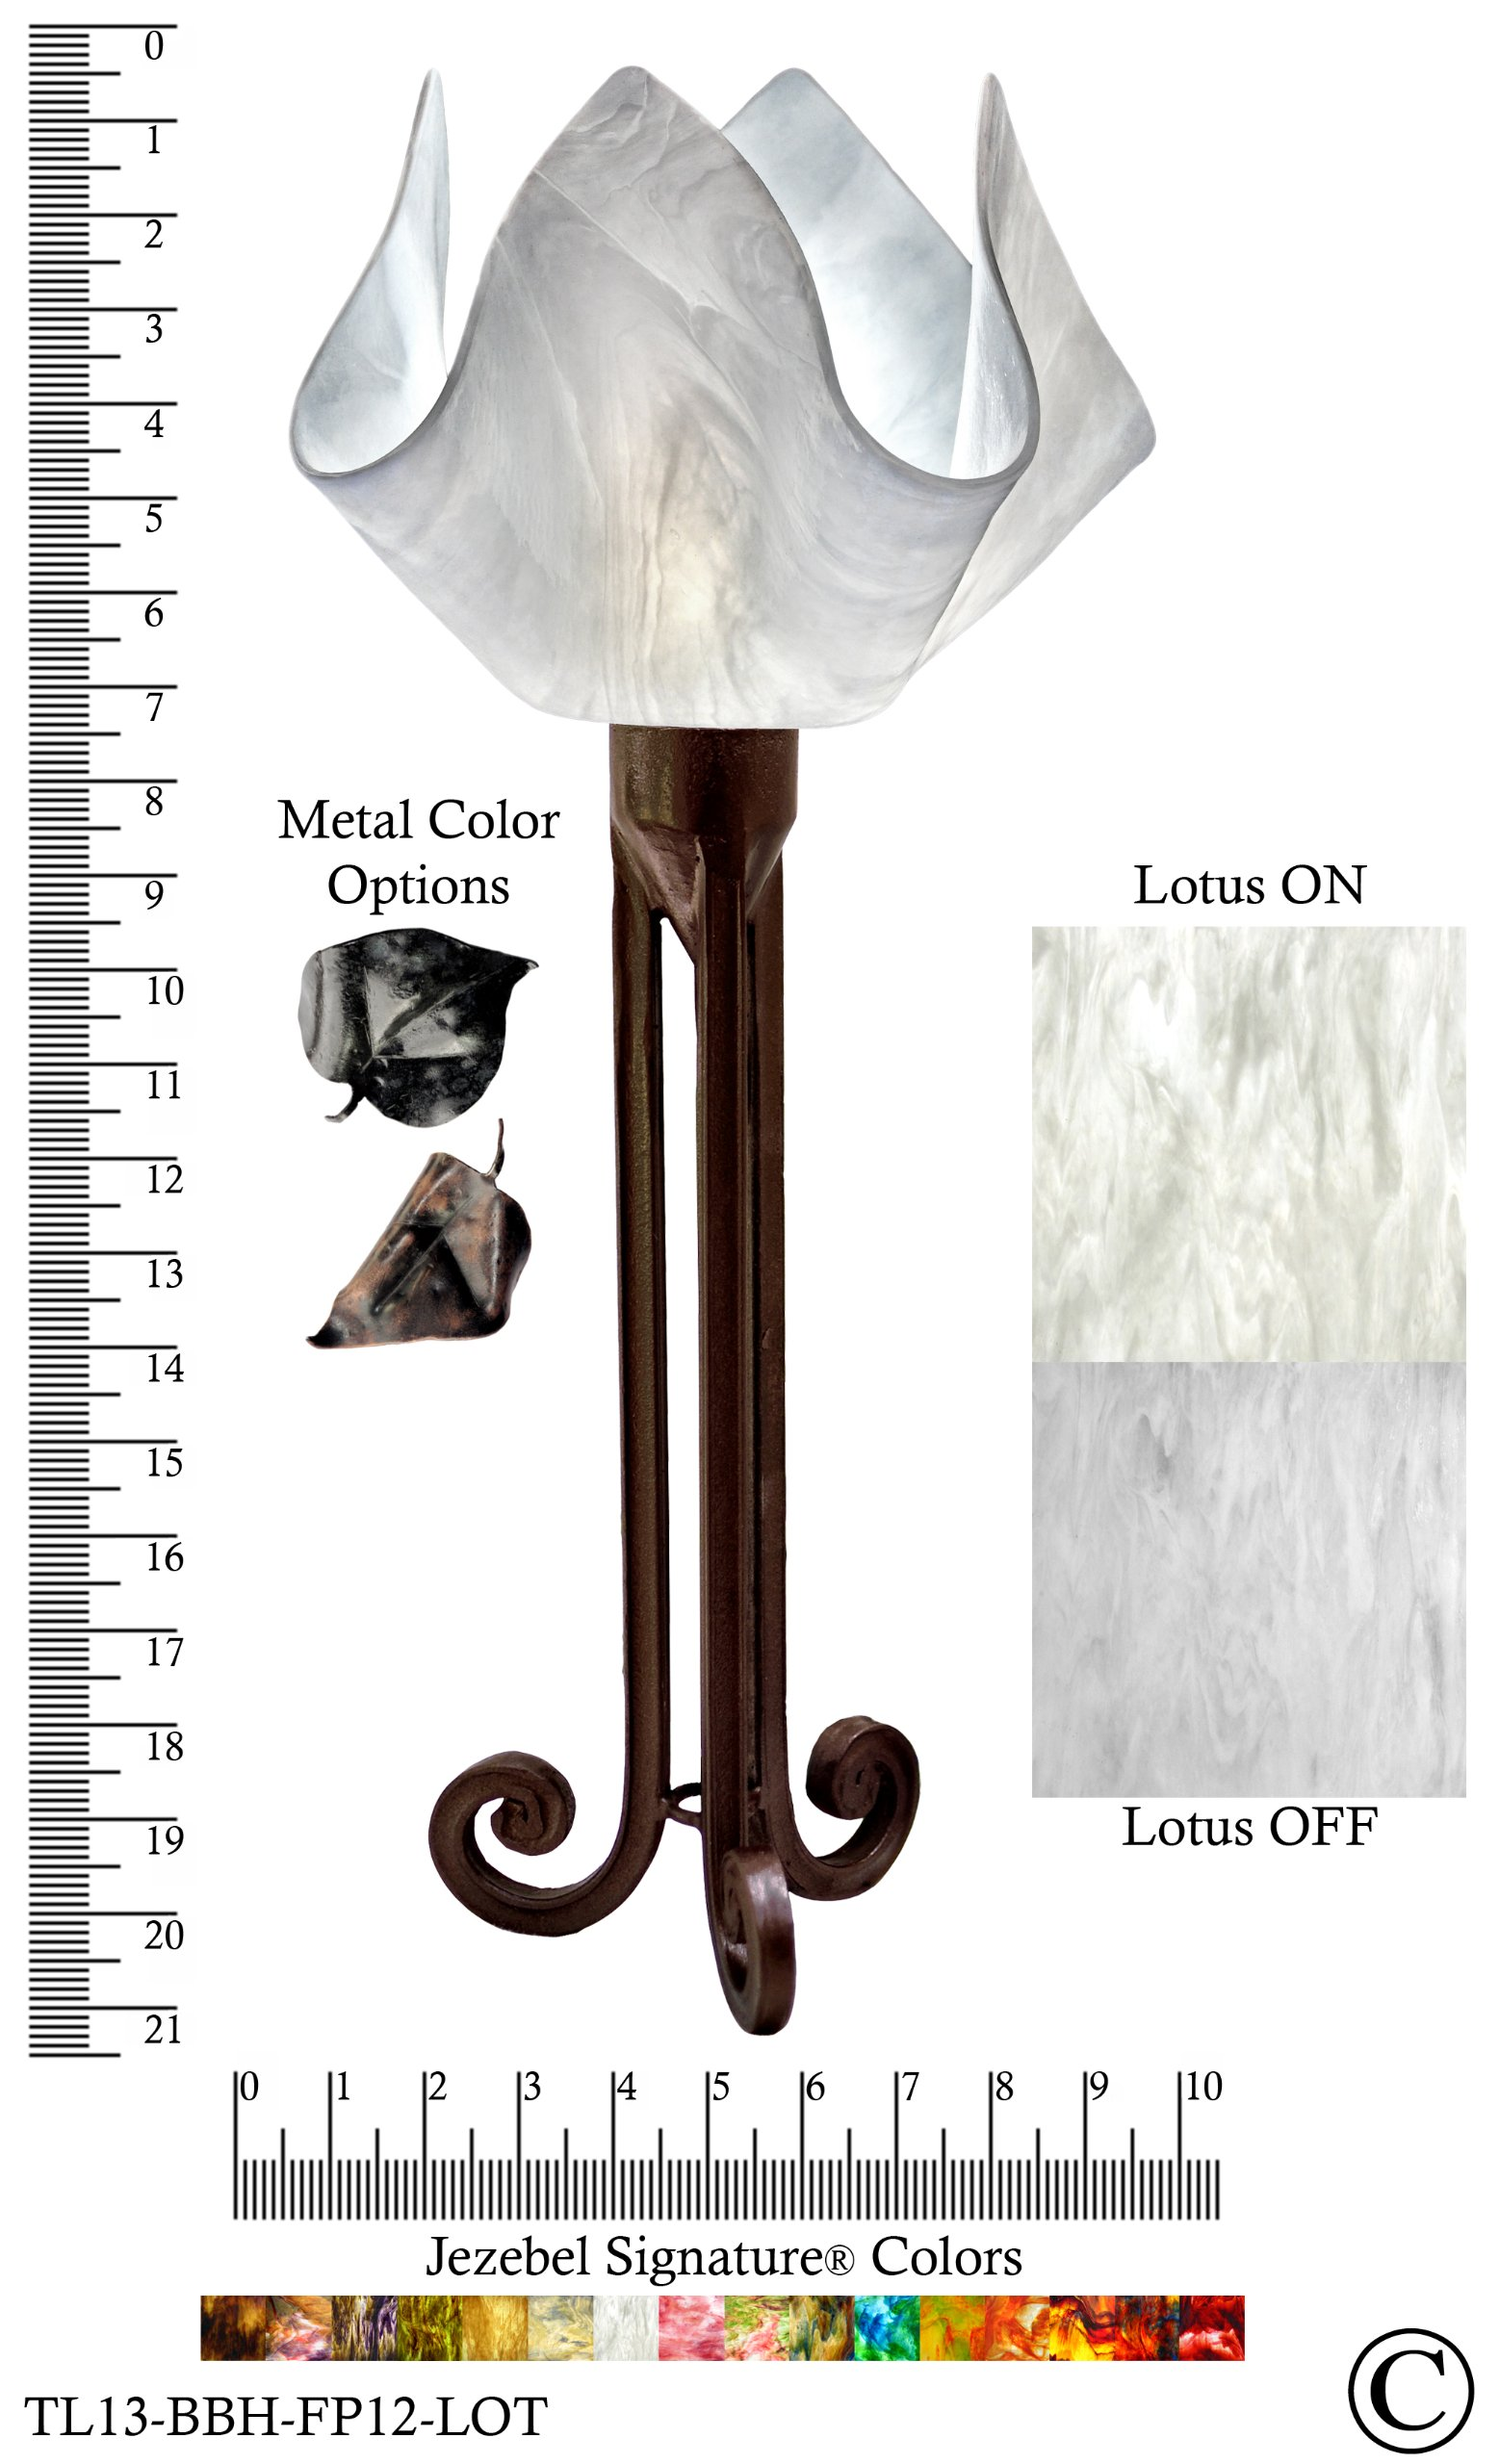 Jezebel Signature® Torch Light. Hardware: Brown with Brown Highlights. Glass: Lotus, Flame Style by Jezebel